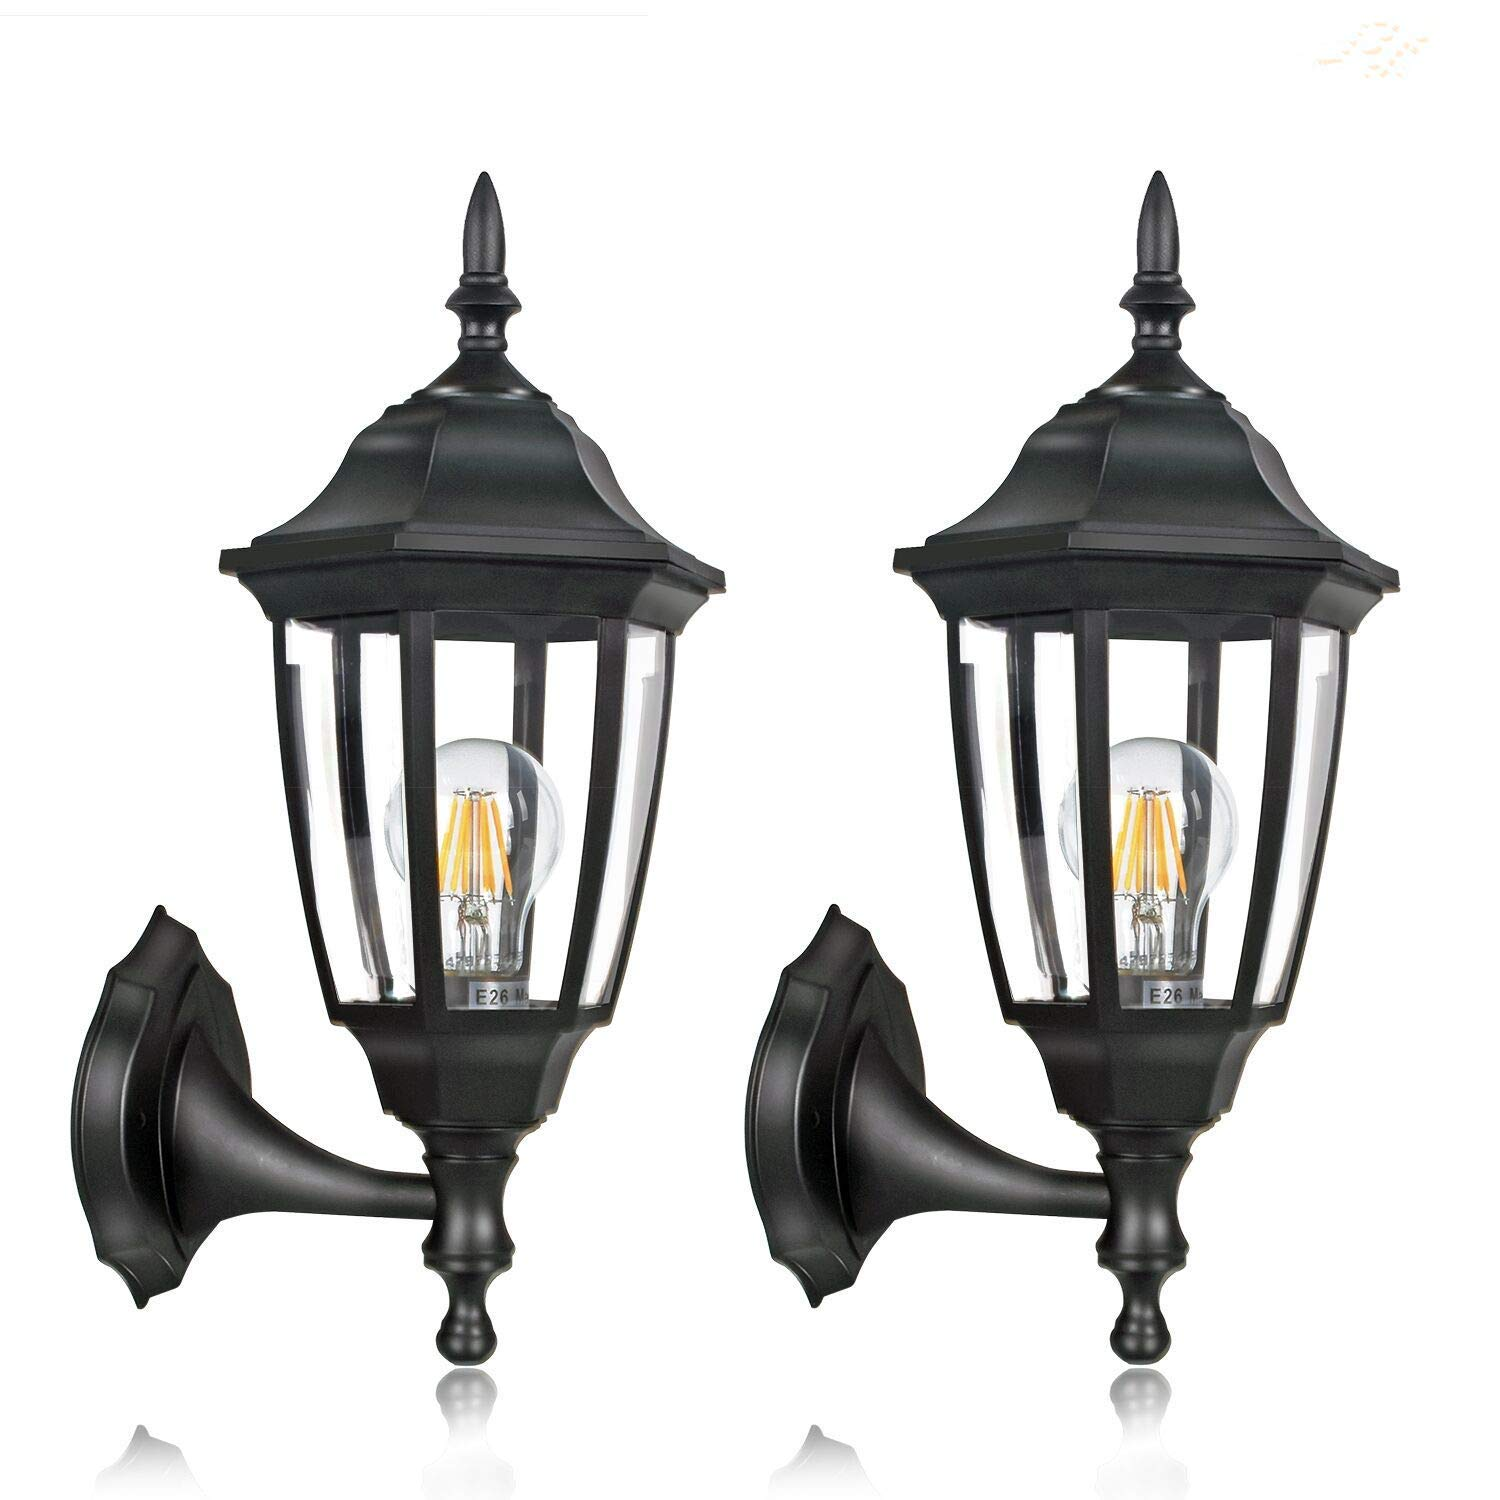 FUDESY 2-Pack Outdoor Wall Lanterns,Corded-Electric 12W Plastic LED Exterior Wall Lights,Waterproof Retro Black Porch Light Fixture Wall Mount for Garage,Yard,Front Door,Deck,FDS341B2